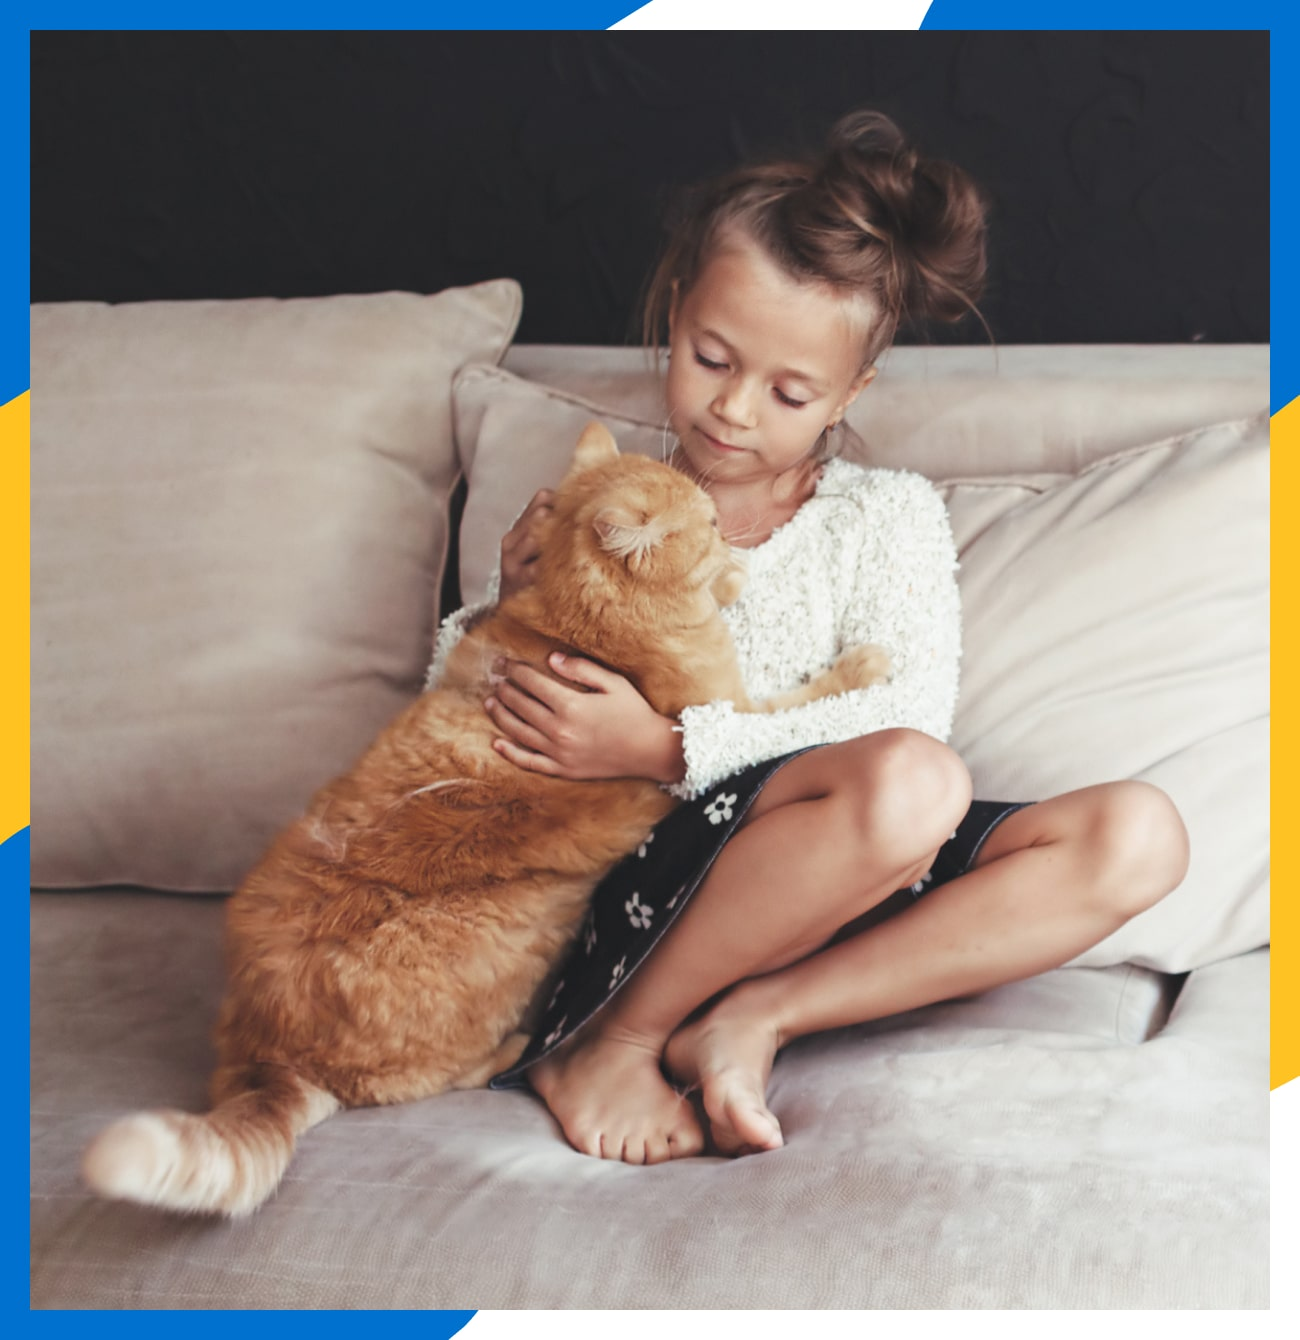 A little girl sitting on the couch holding a large cat.